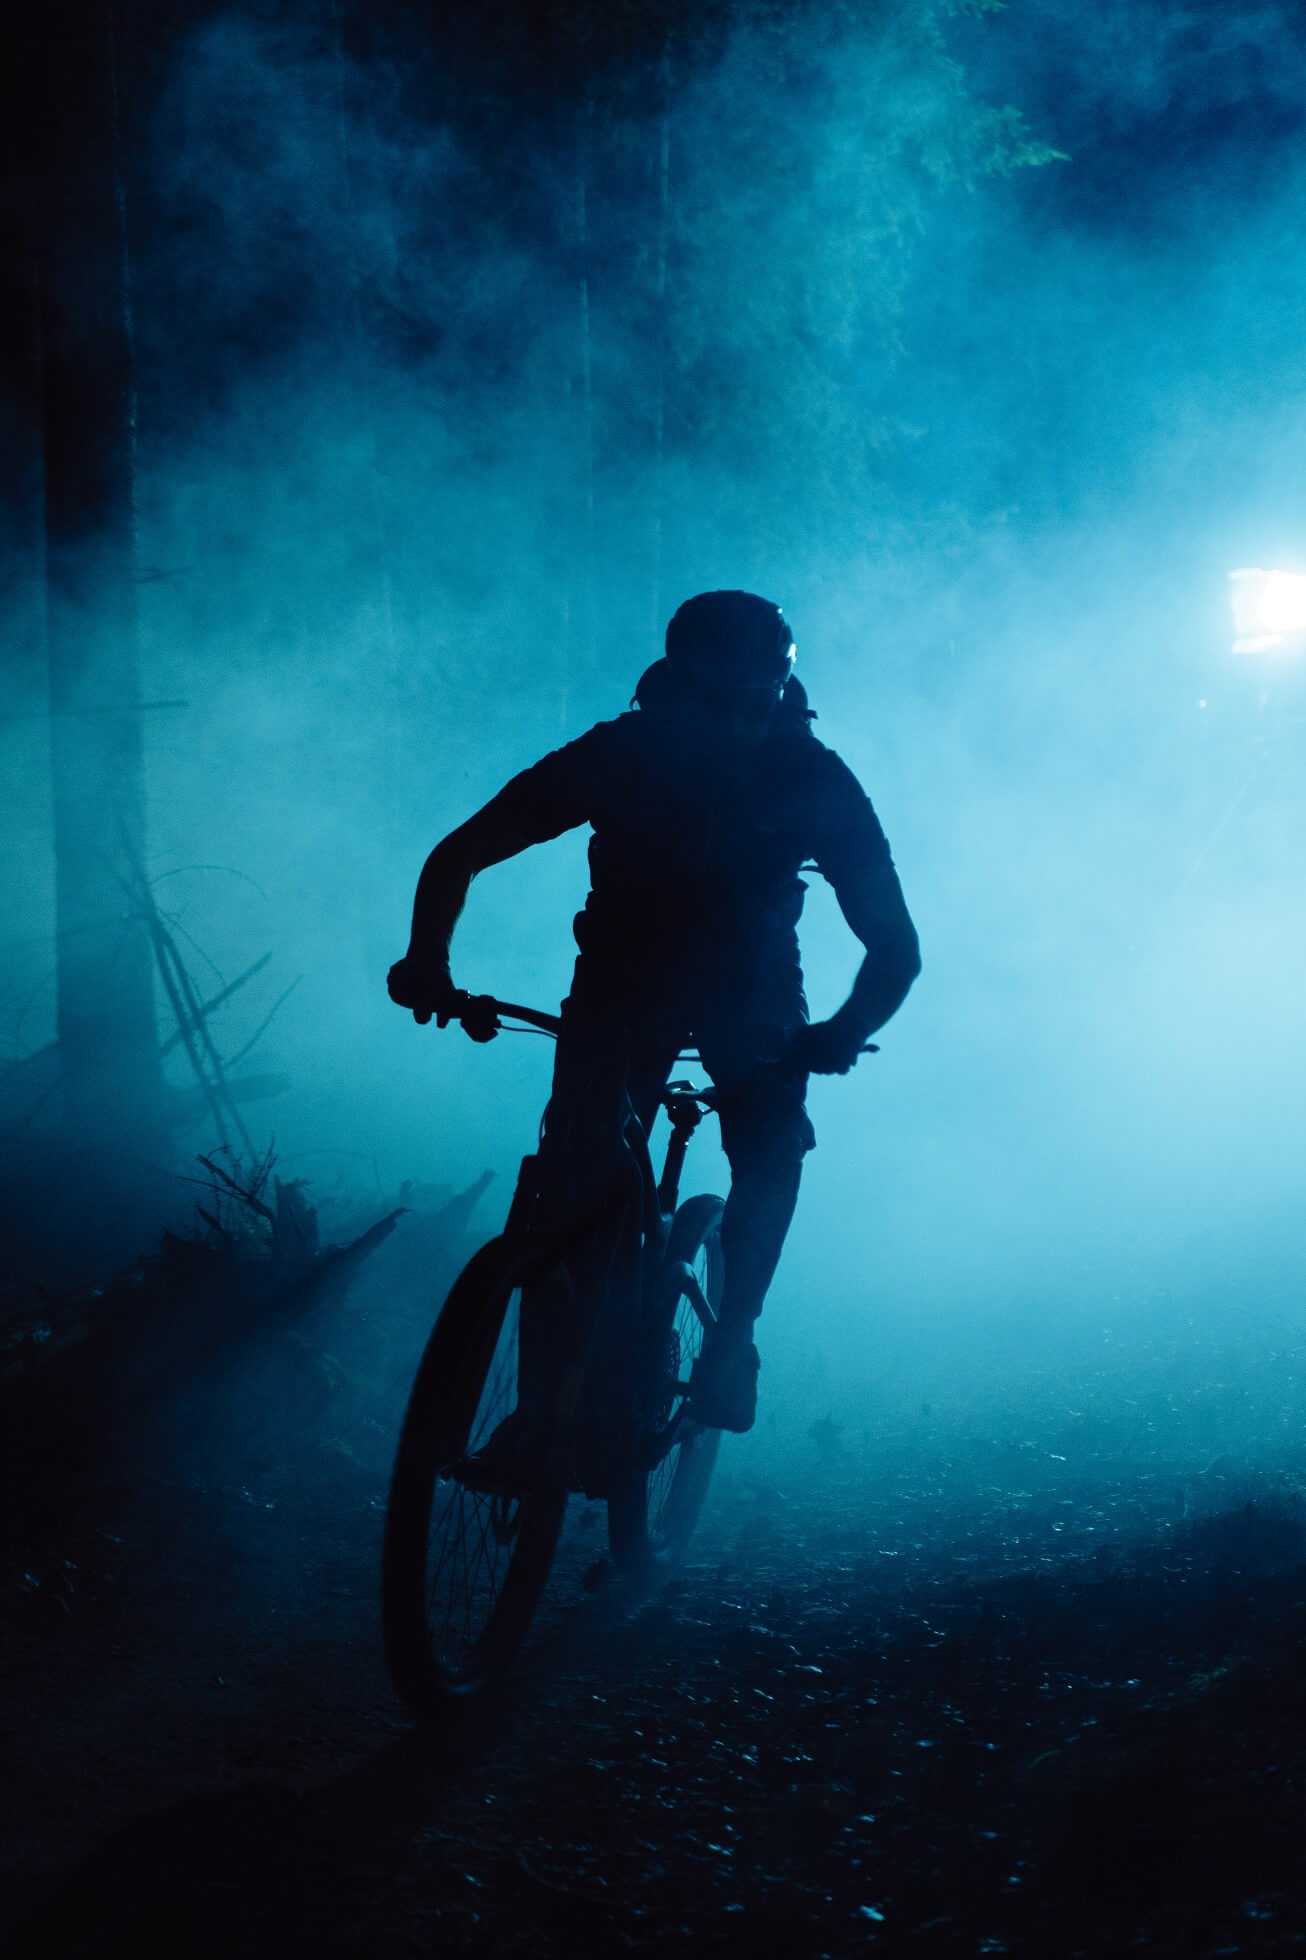 Silhouette of a man riding his mountain bike in a dark forest with blue lights in the background